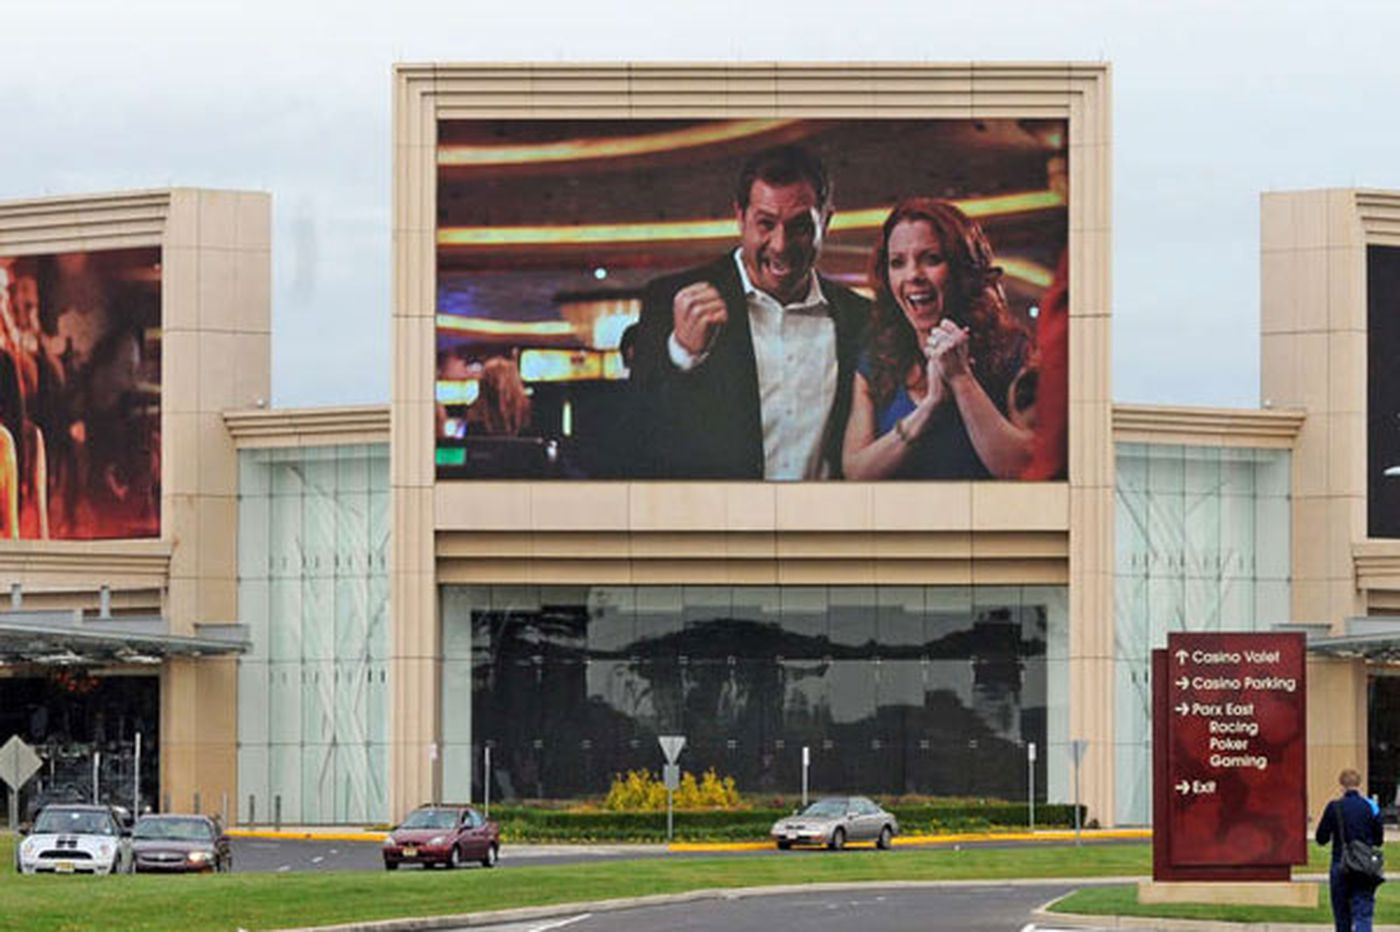 Parx Casino fights for lower tax bill in Bensalem